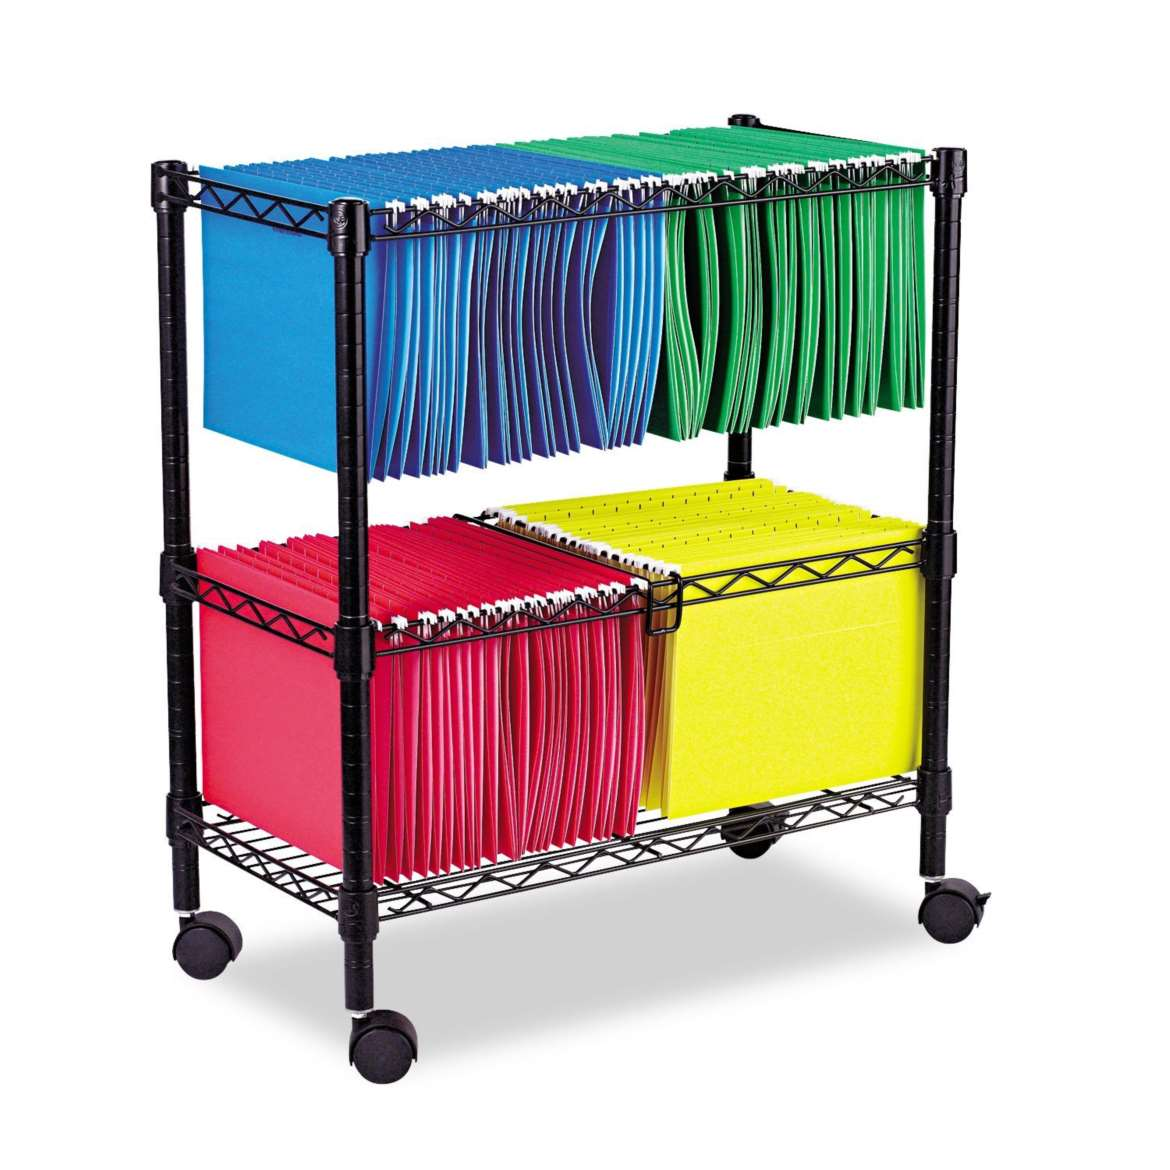 Filing Cabinets Buying Guide